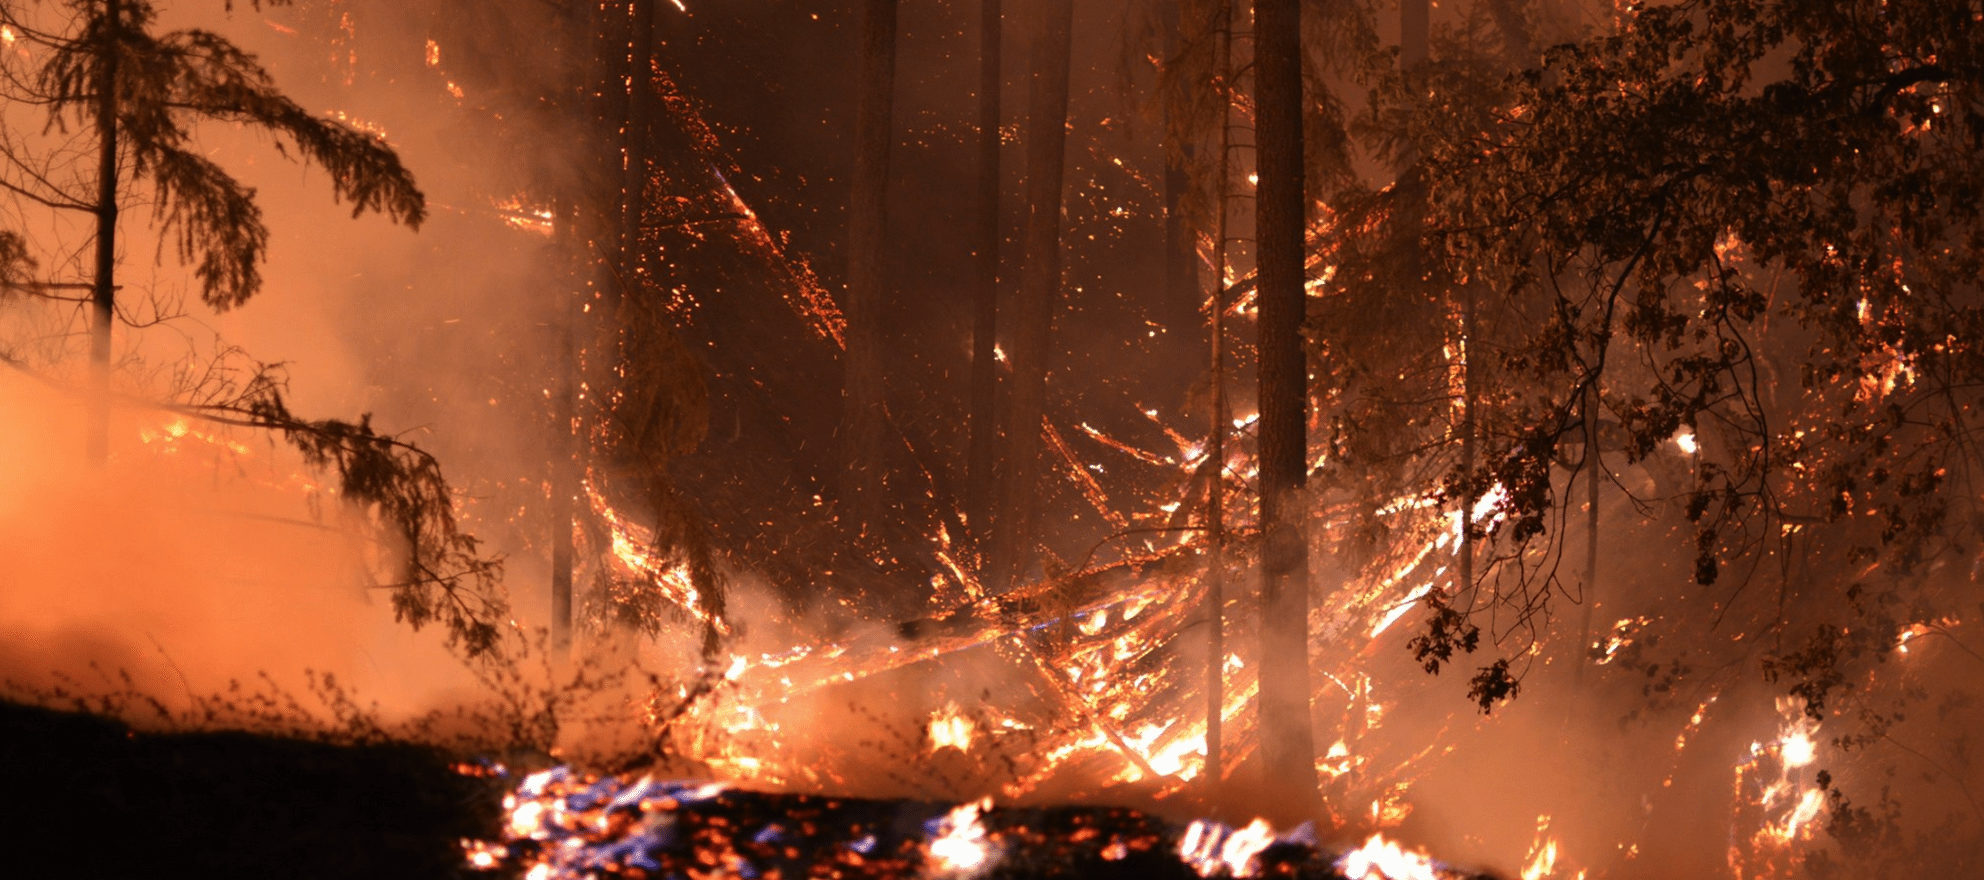 The California Association of Realtors is raising money for members impacted by wildfires